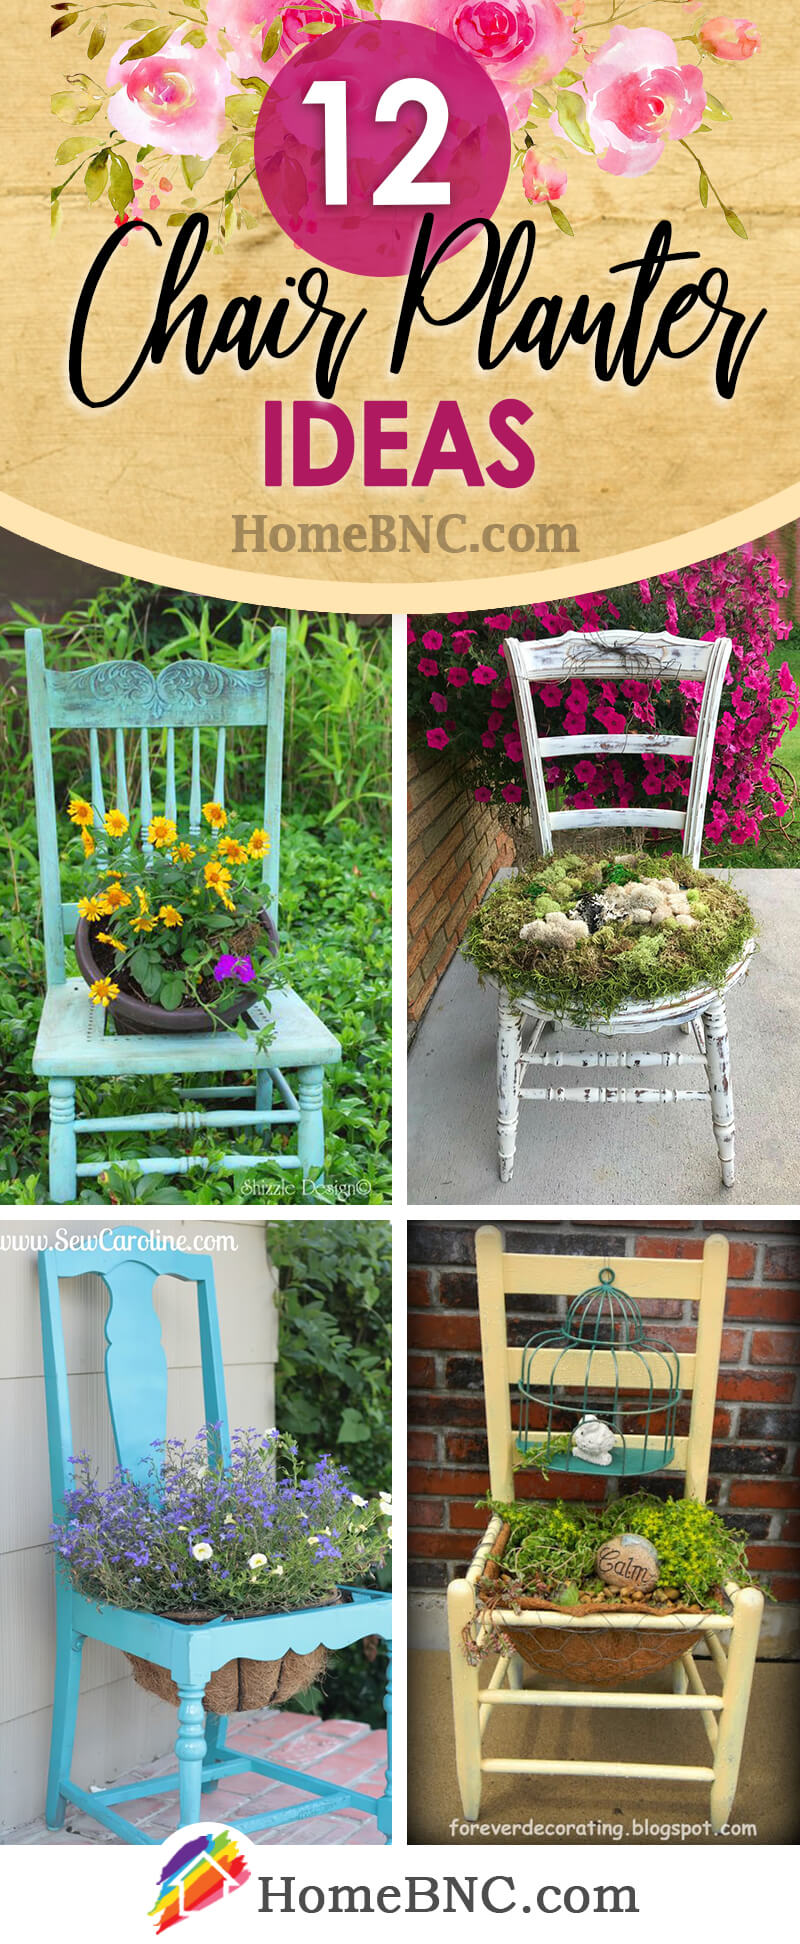 12 Best Chair Planter Ideas And Designs For 2021